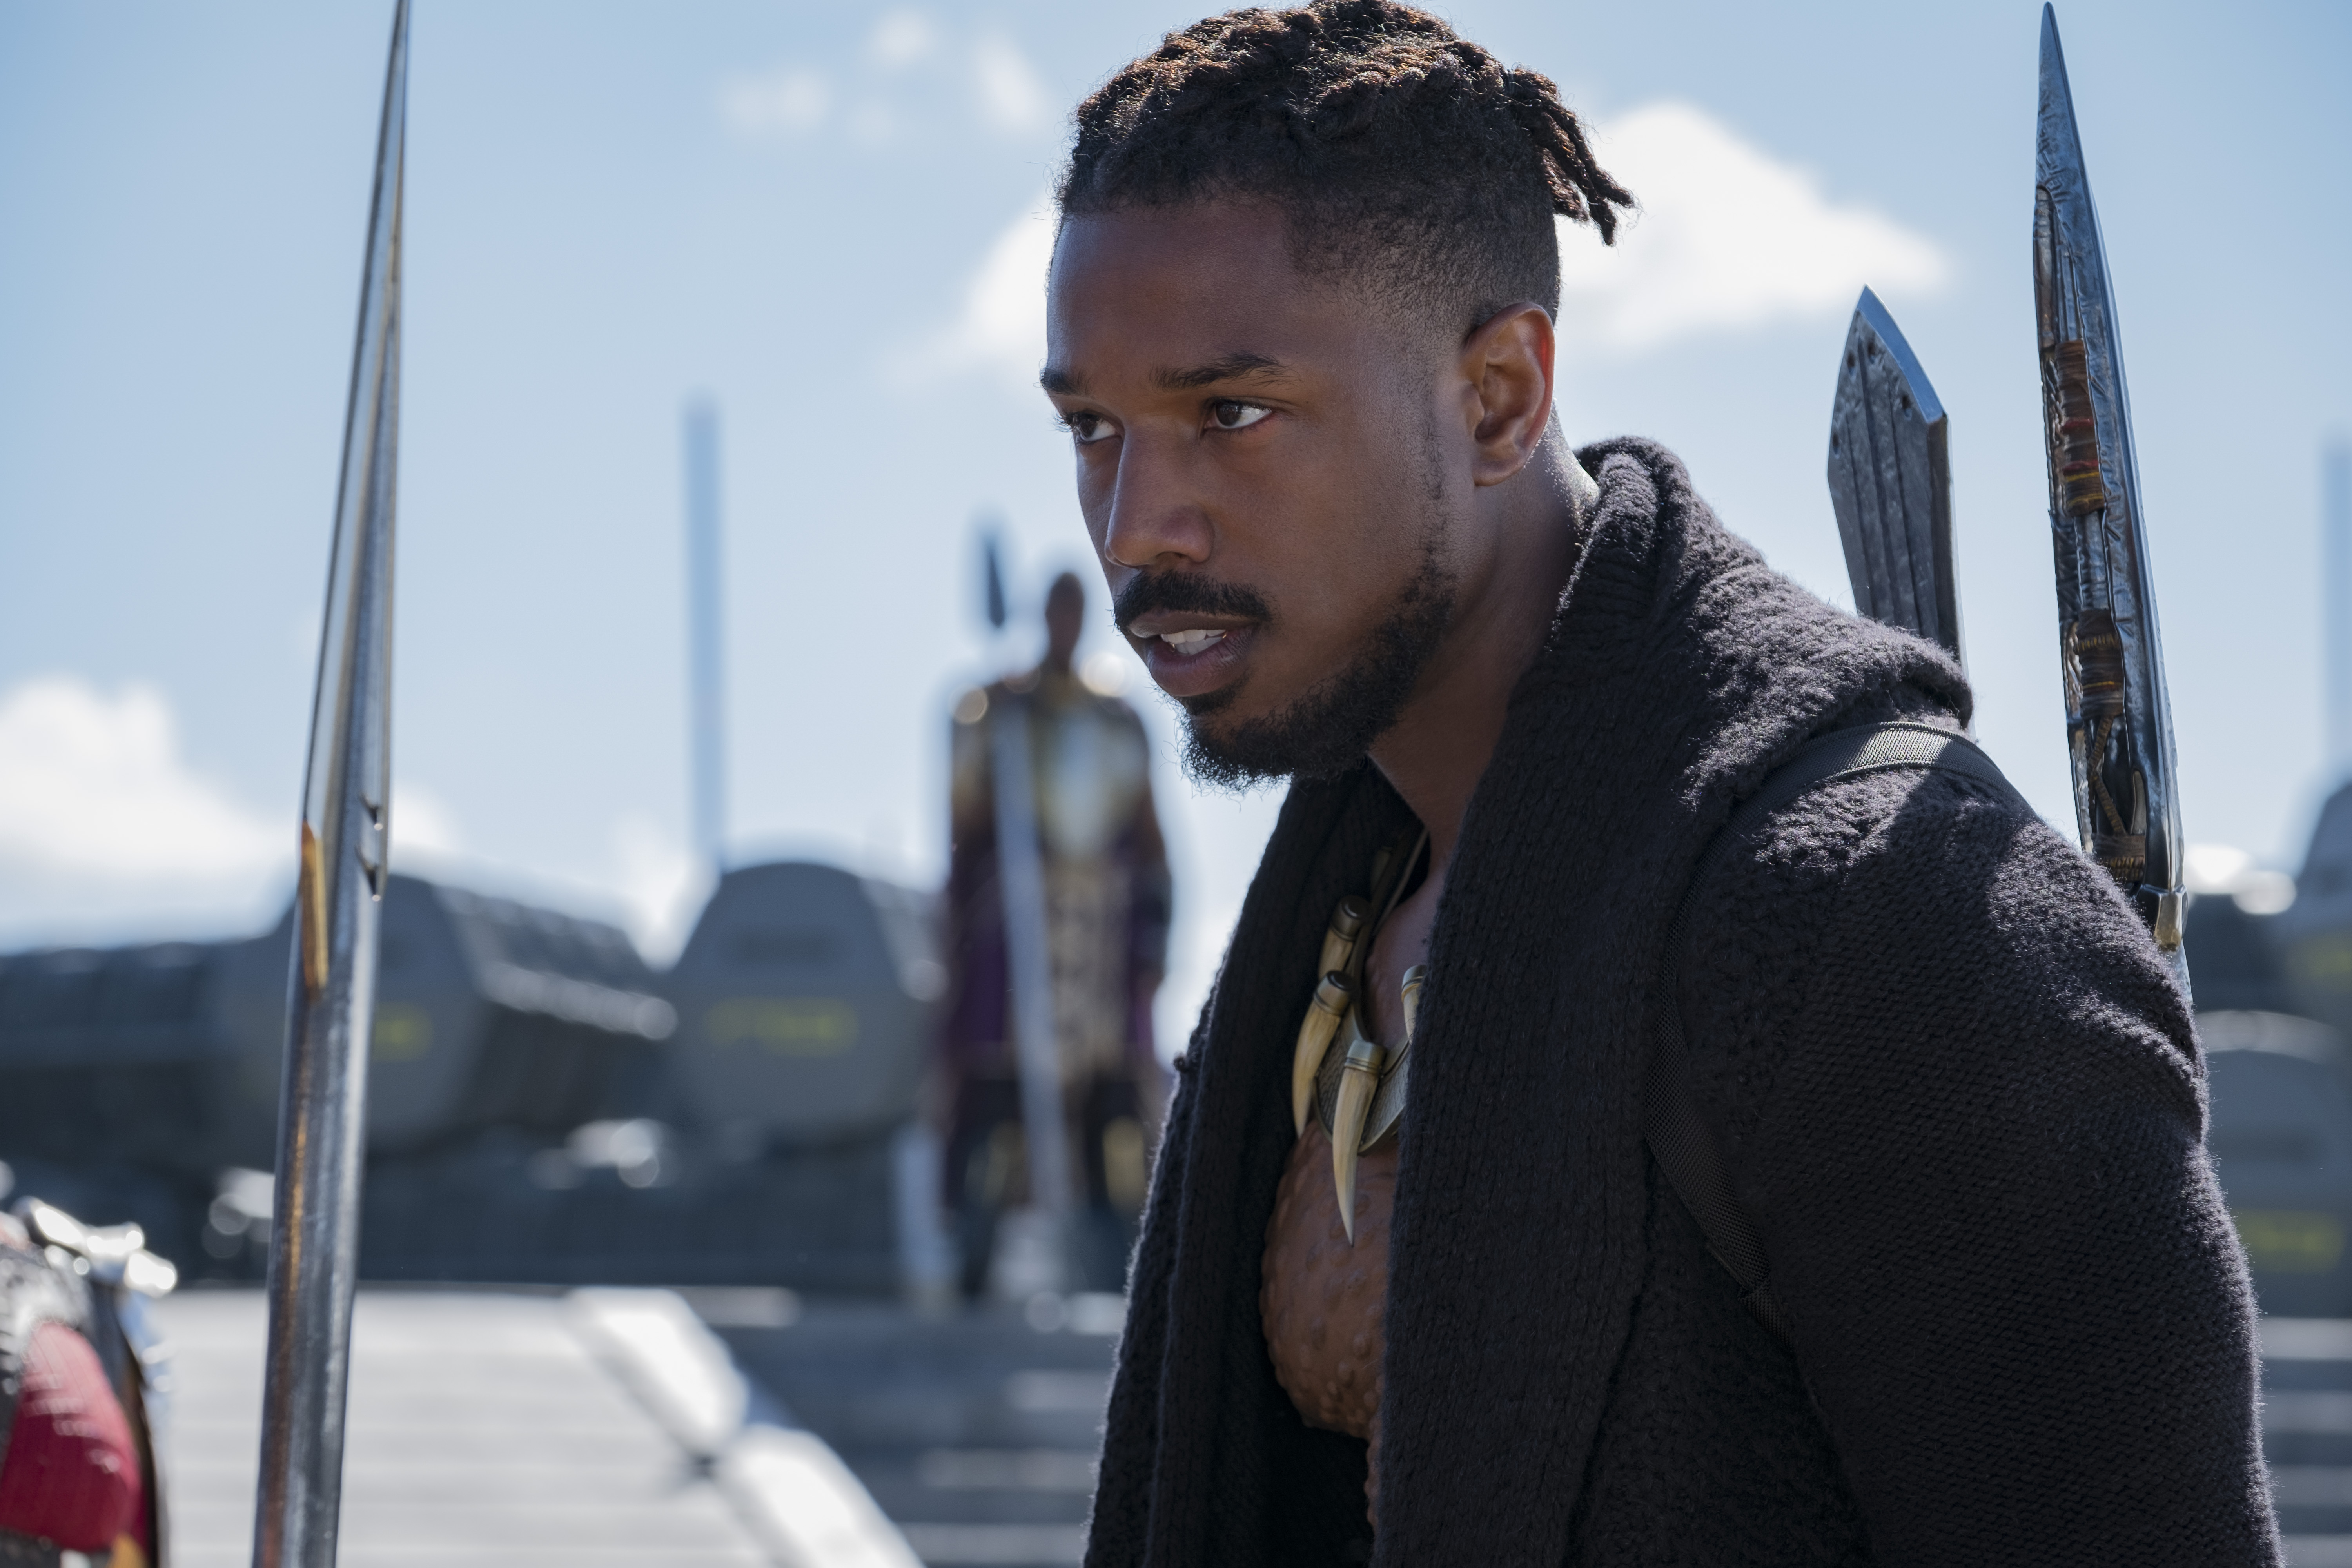 Black Panther's Killmonger will get his own miniseries